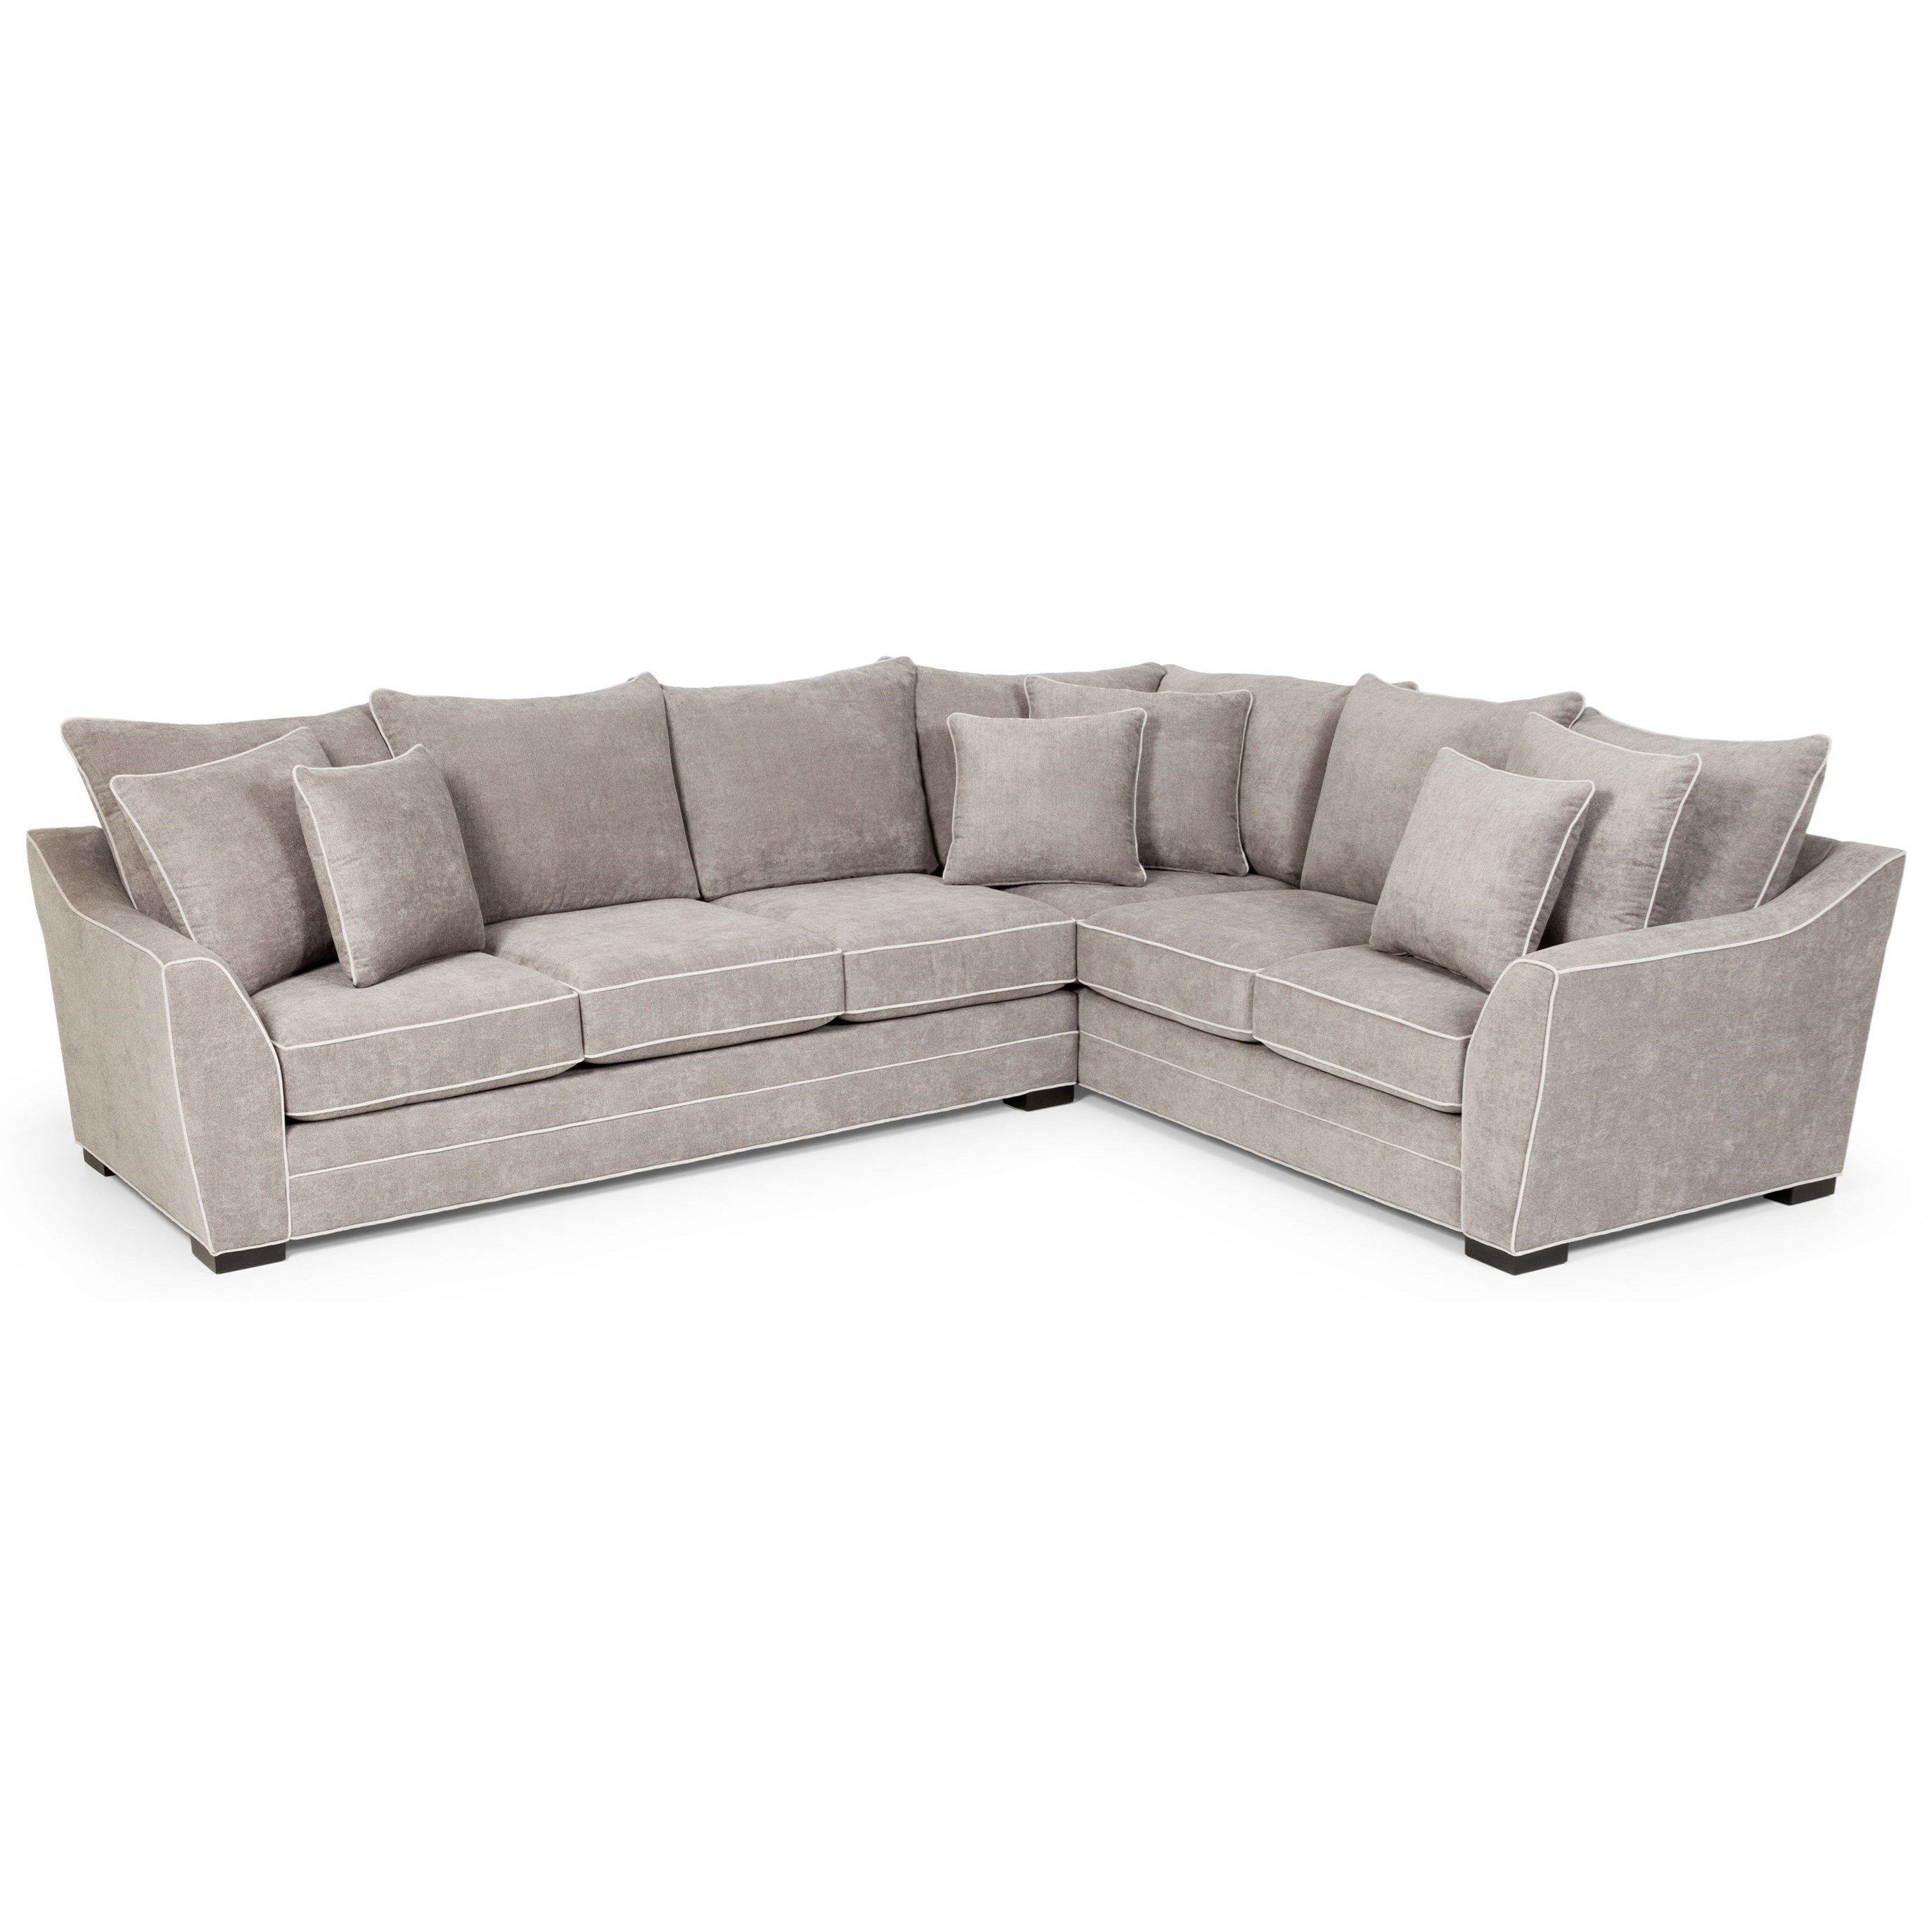 378 2-Piece Sectional by Stanton at Wilson's Furniture